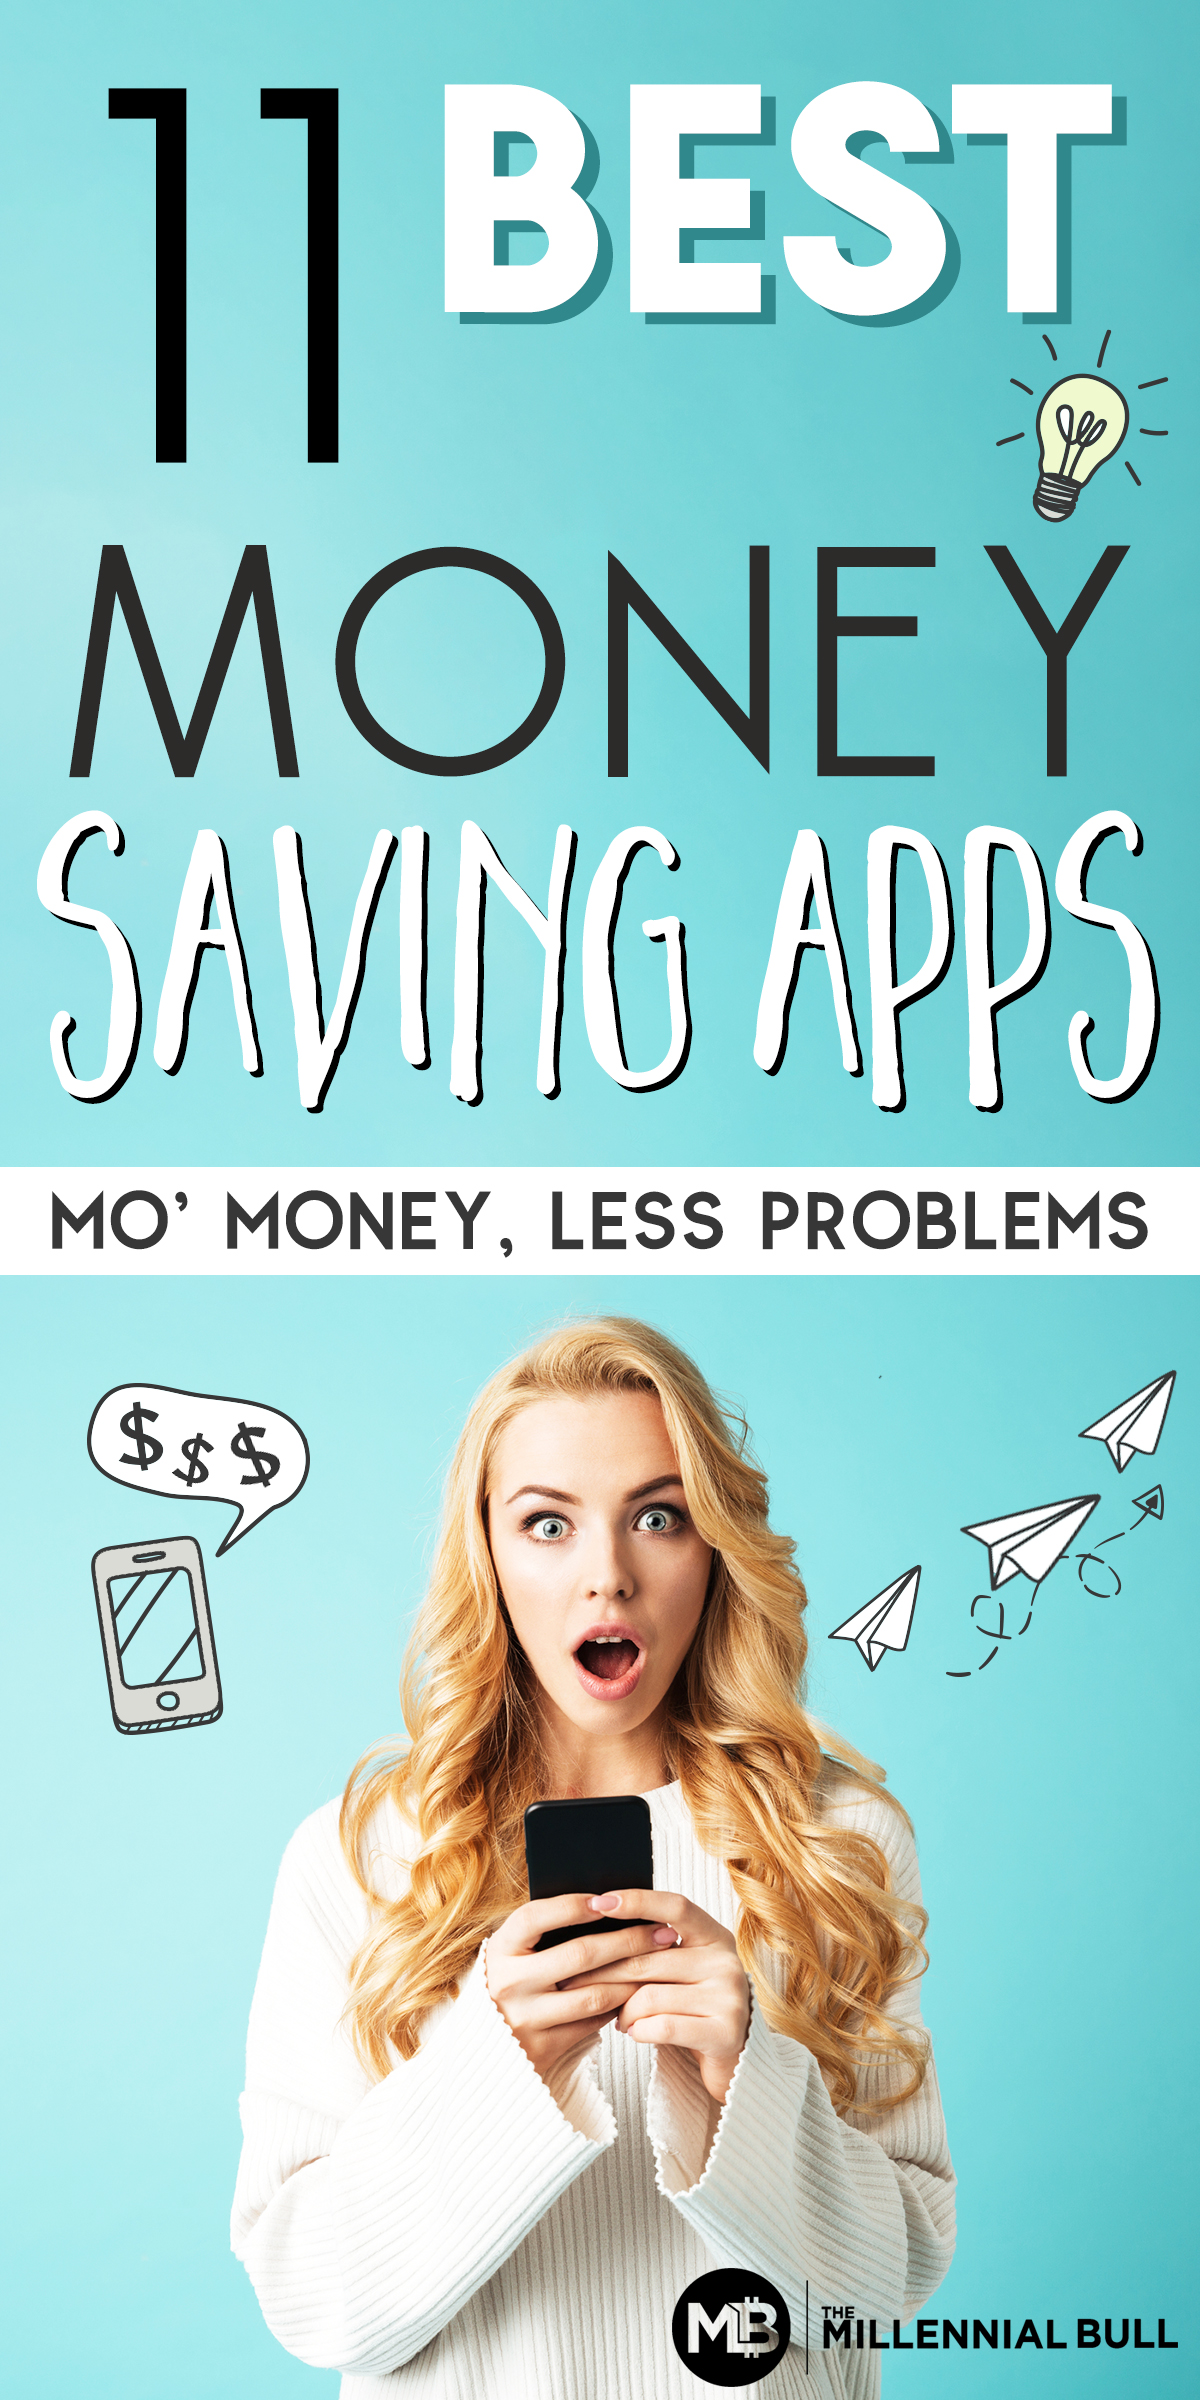 Money saving apps to boost your savings! Use this programs to get cash back, be paid to shop, get refunds and more using your phone! These easy-to-use apps are effortless ways to save more money! #savemoney #moneysavingapps #personalfinance